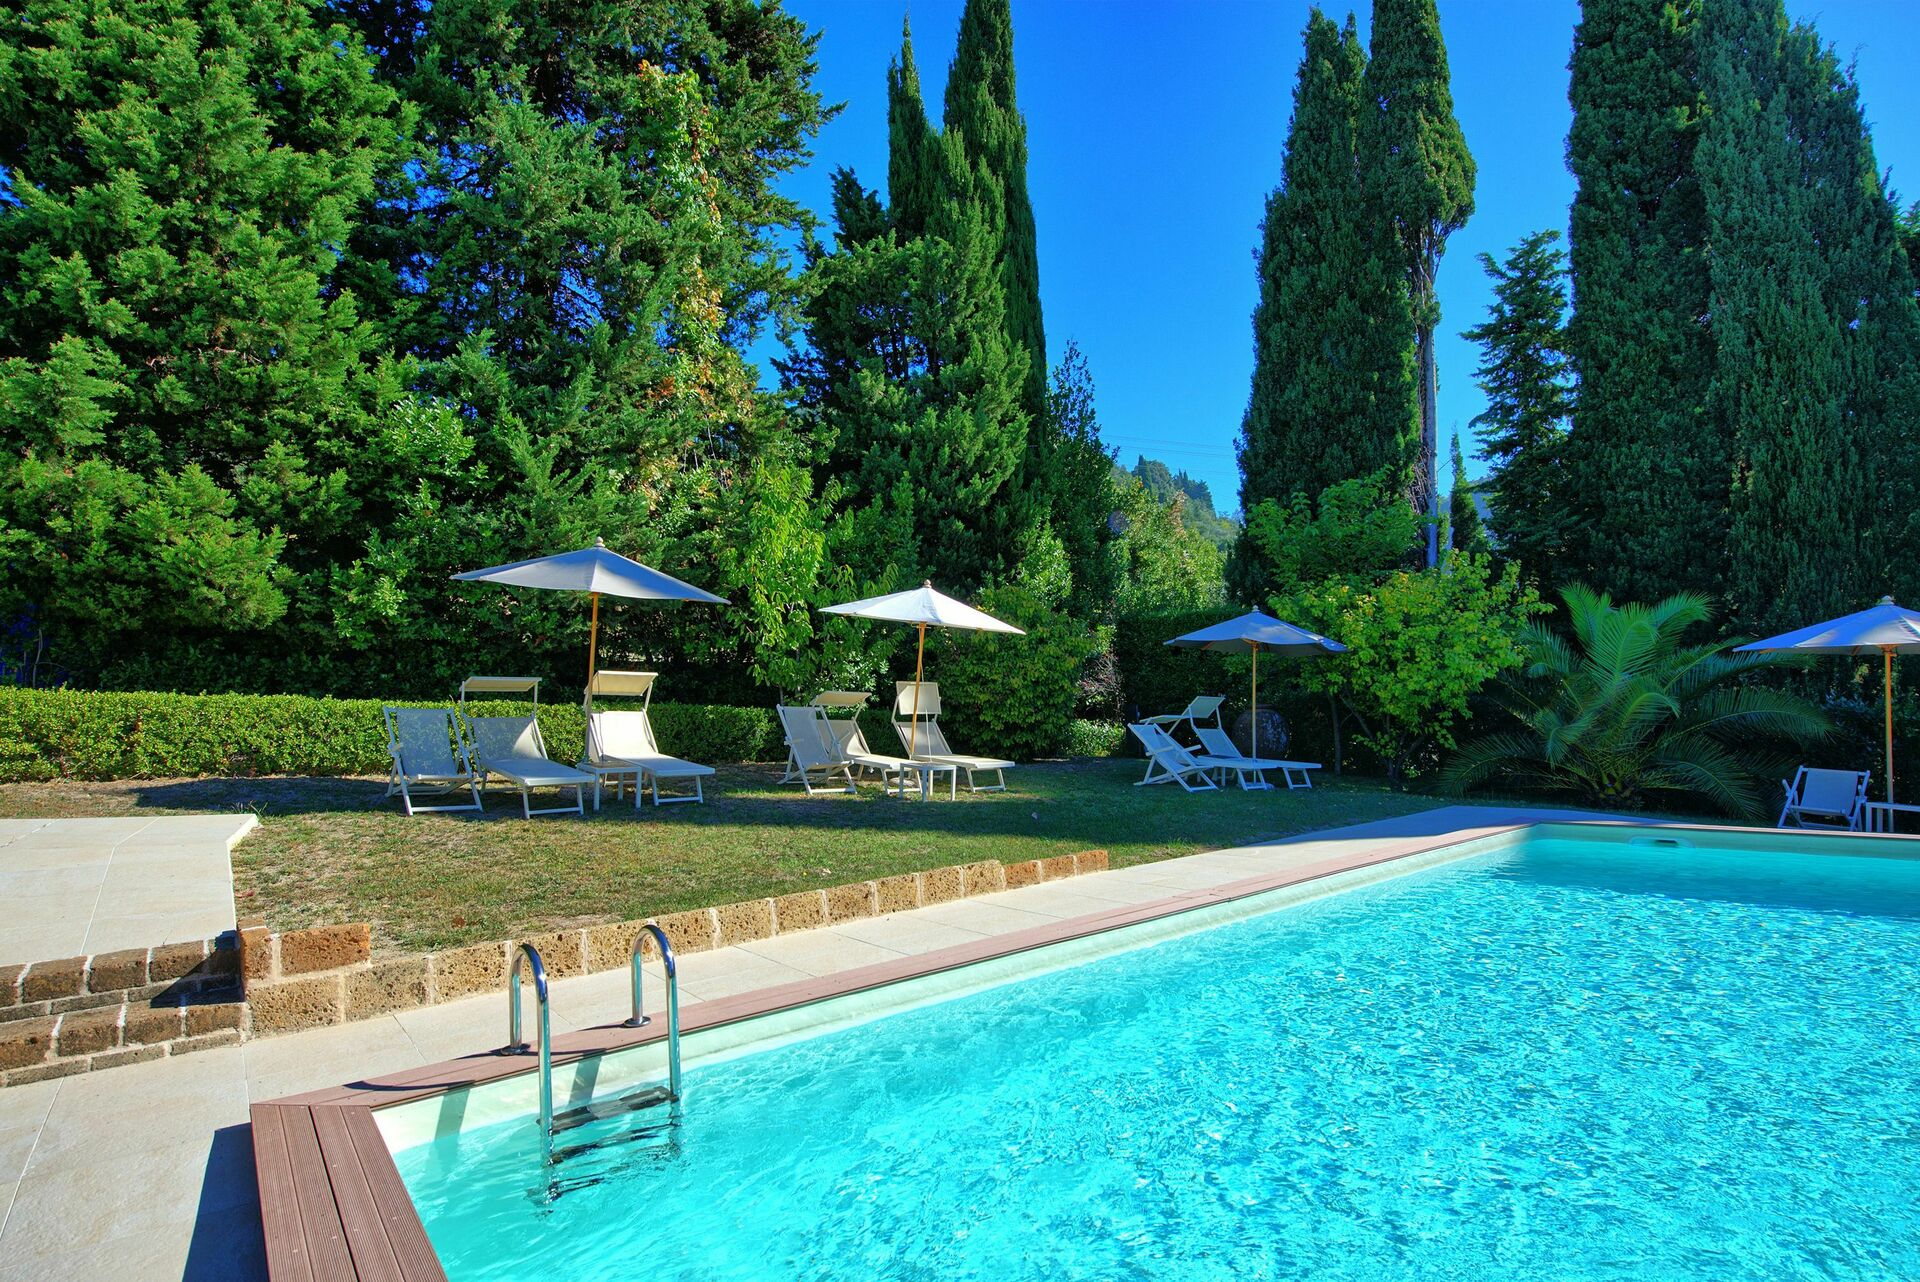 Luxury Holiday Villa With Pool Villa Camaiore Luxury Holiday Villa Rental In Camaiore Versilia